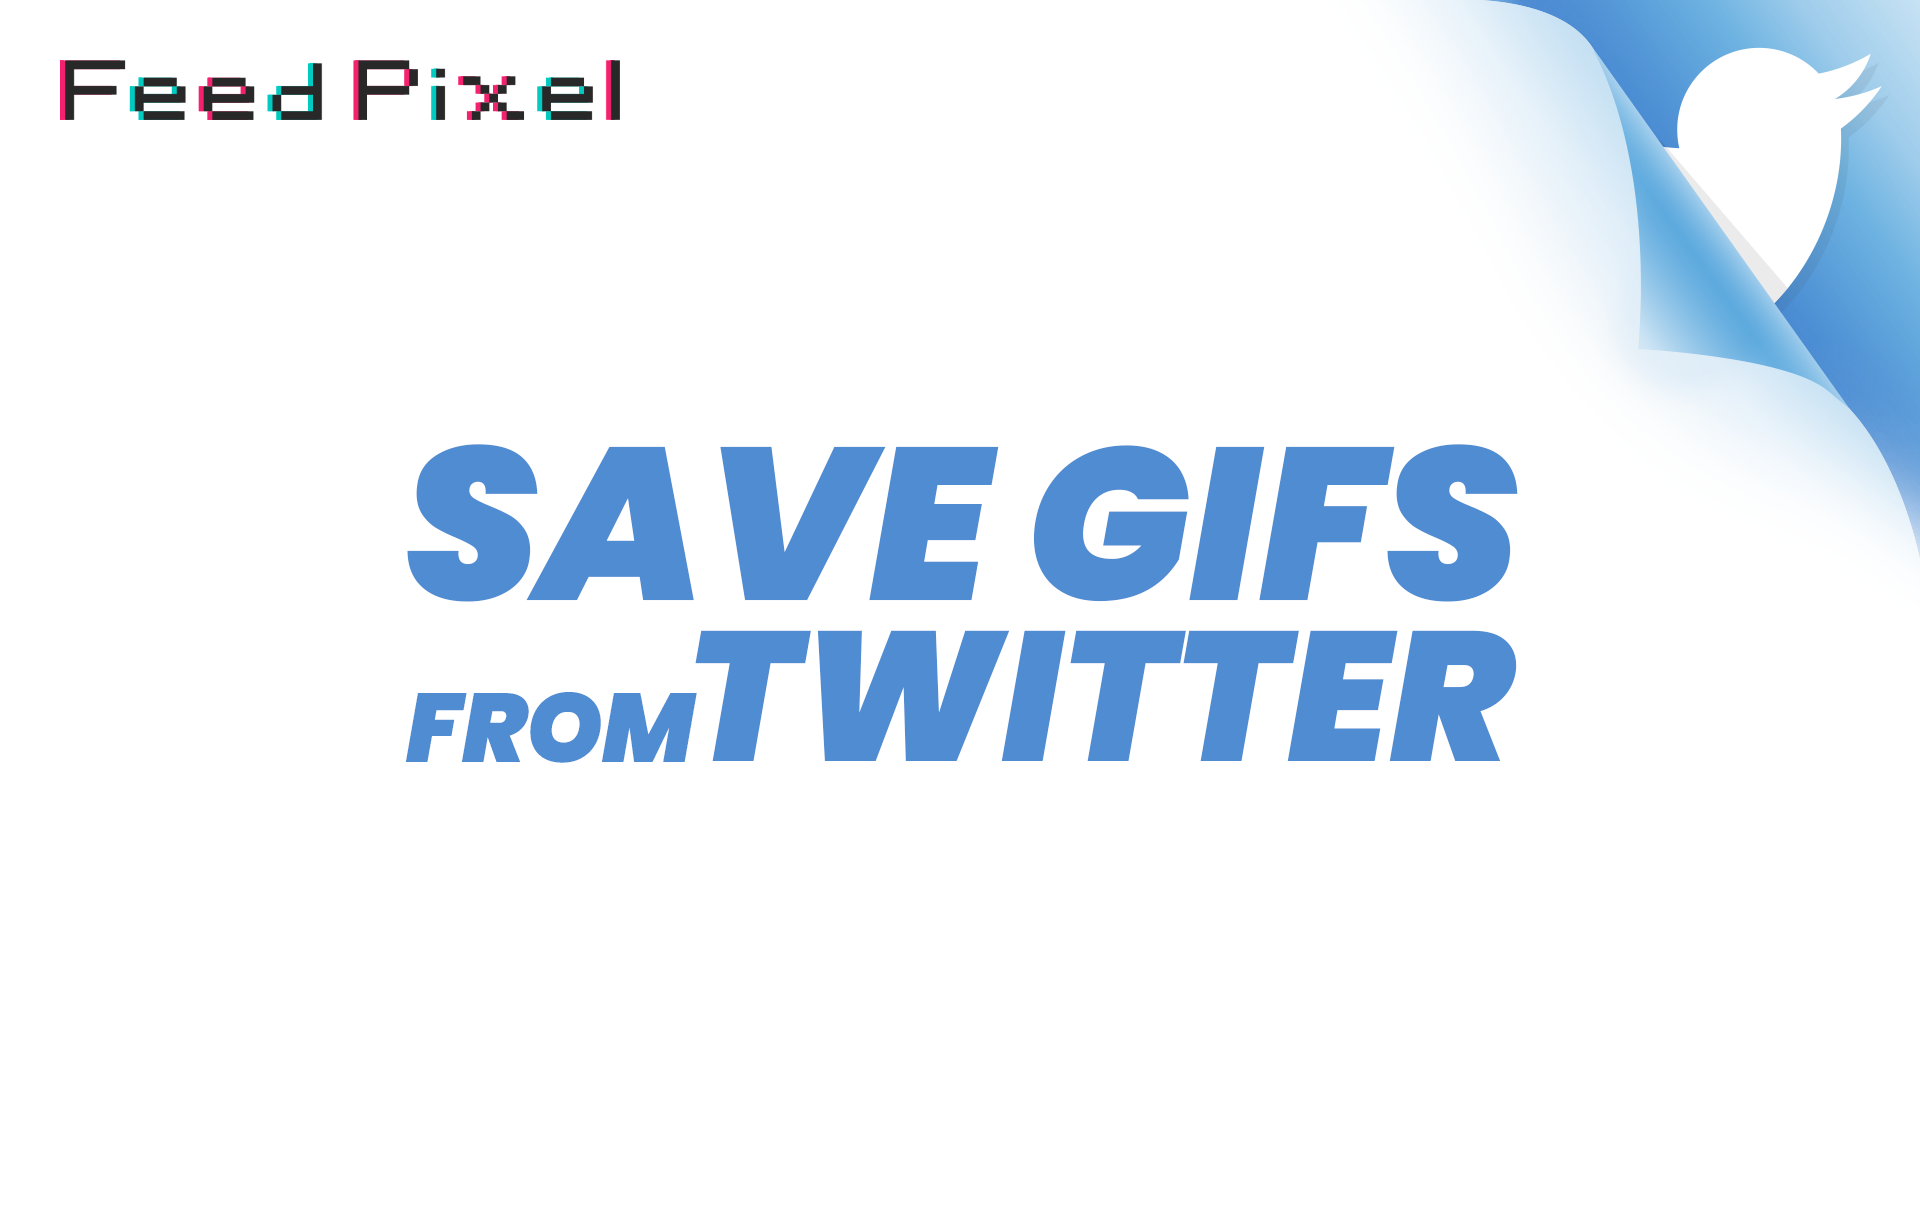 How To Save GIFs From Twitter? With FeedPixel